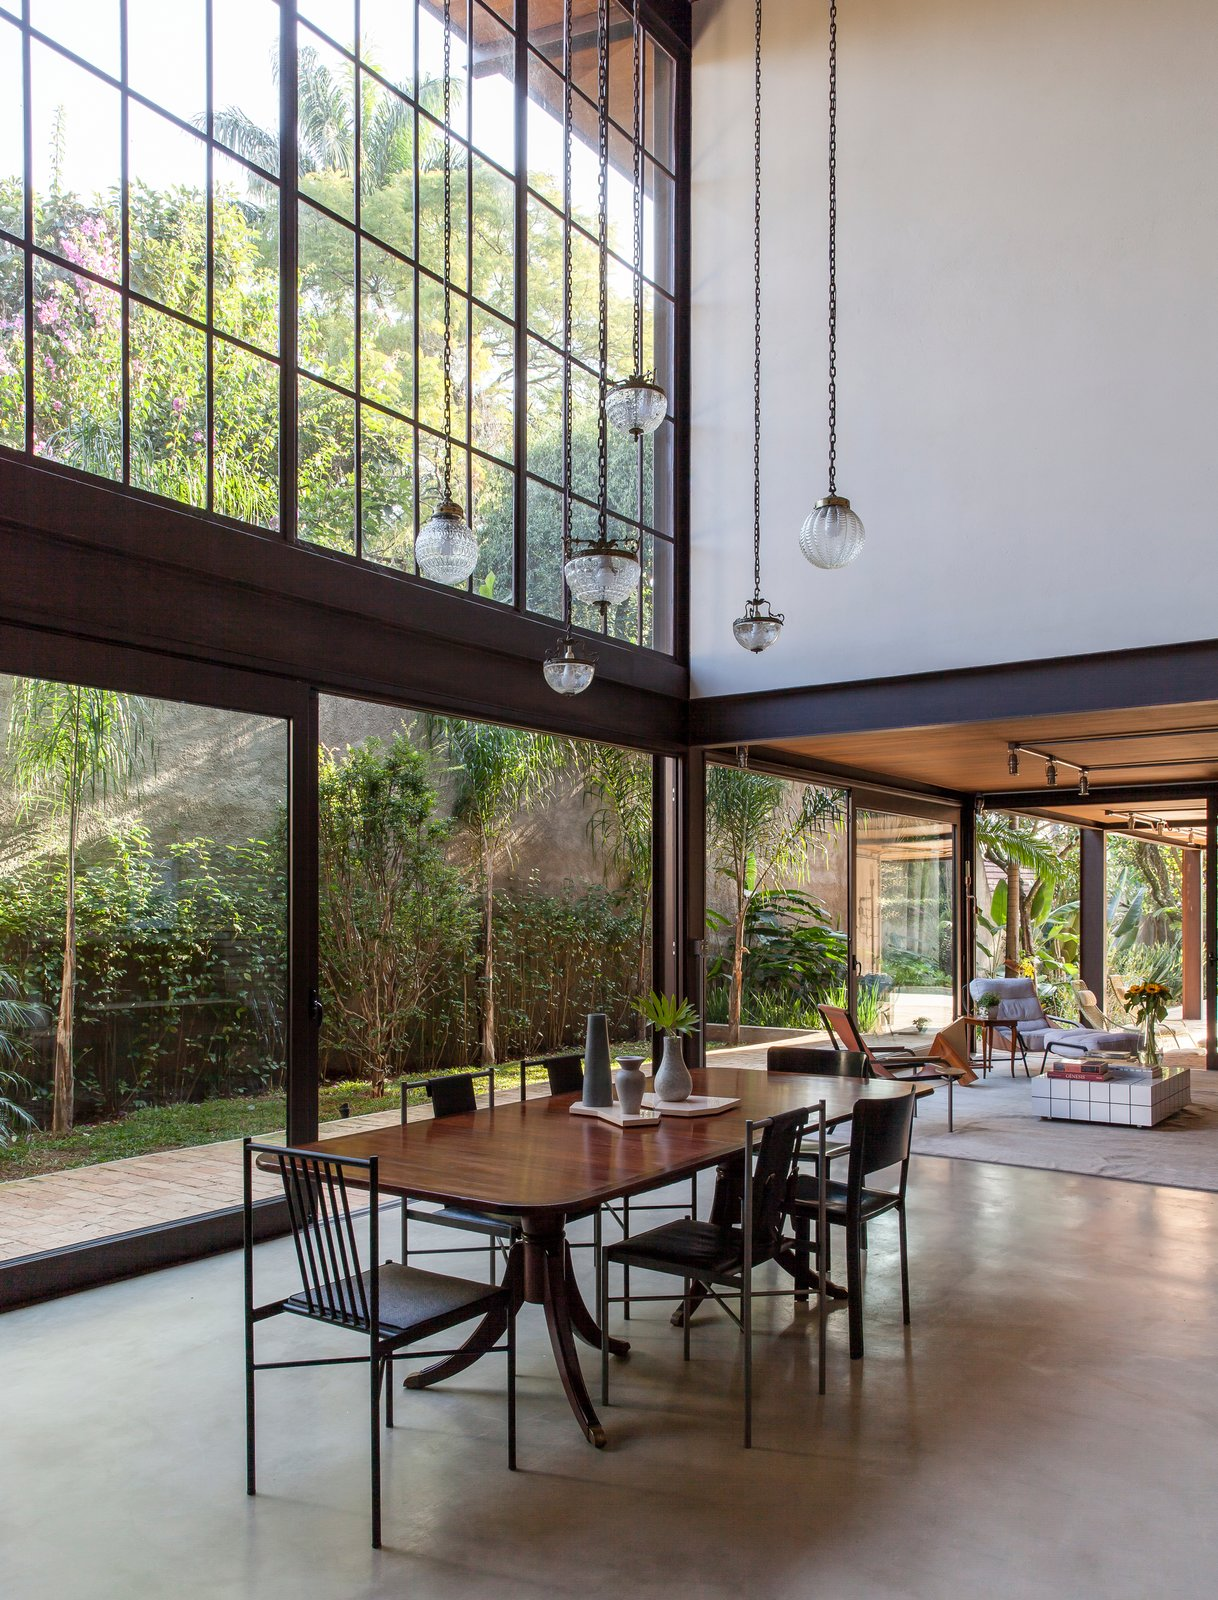 Dining Room, Pendant Lighting, Lamps, Chair, Table, and Concrete Floor  Conde D'eu House